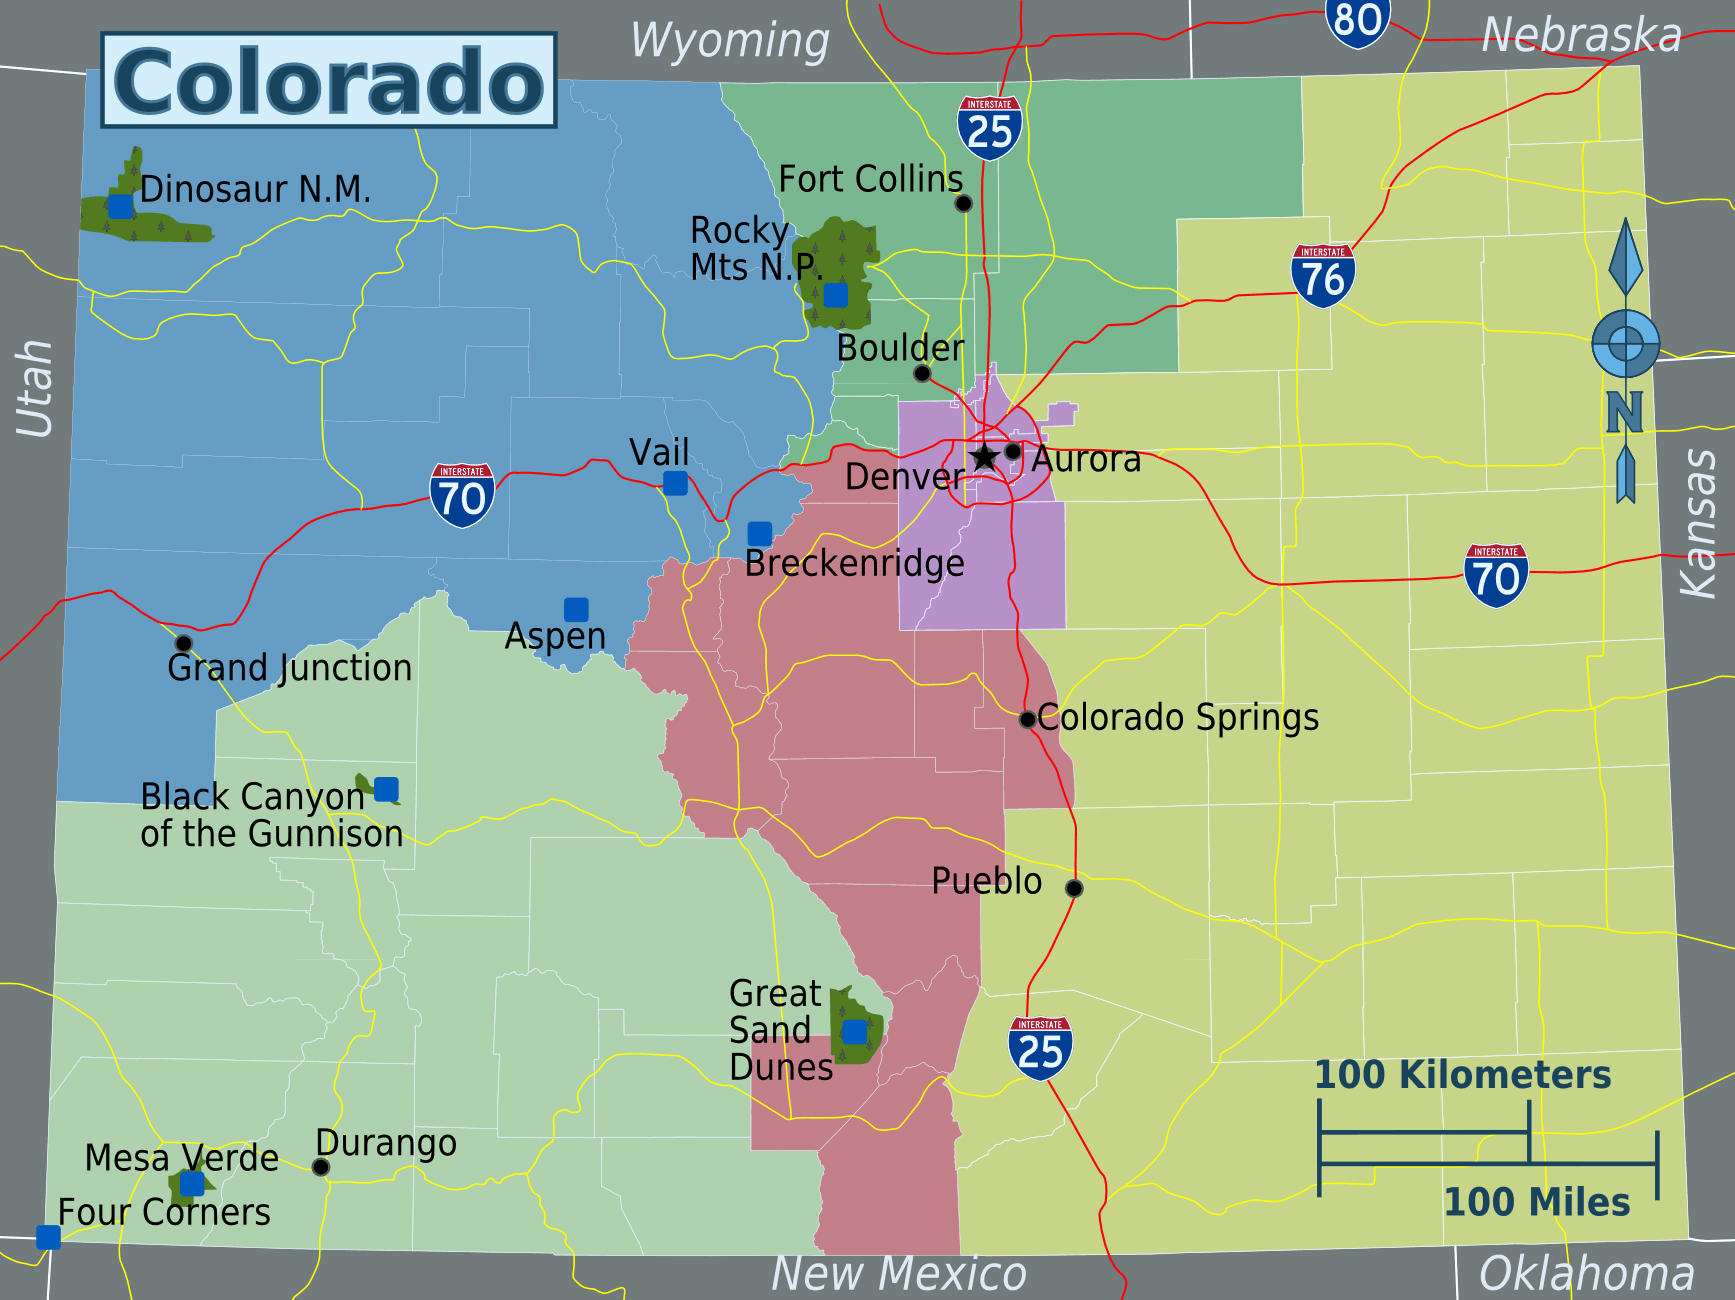 Detailed Regions Map Of Colorado State Colorado State Detailed